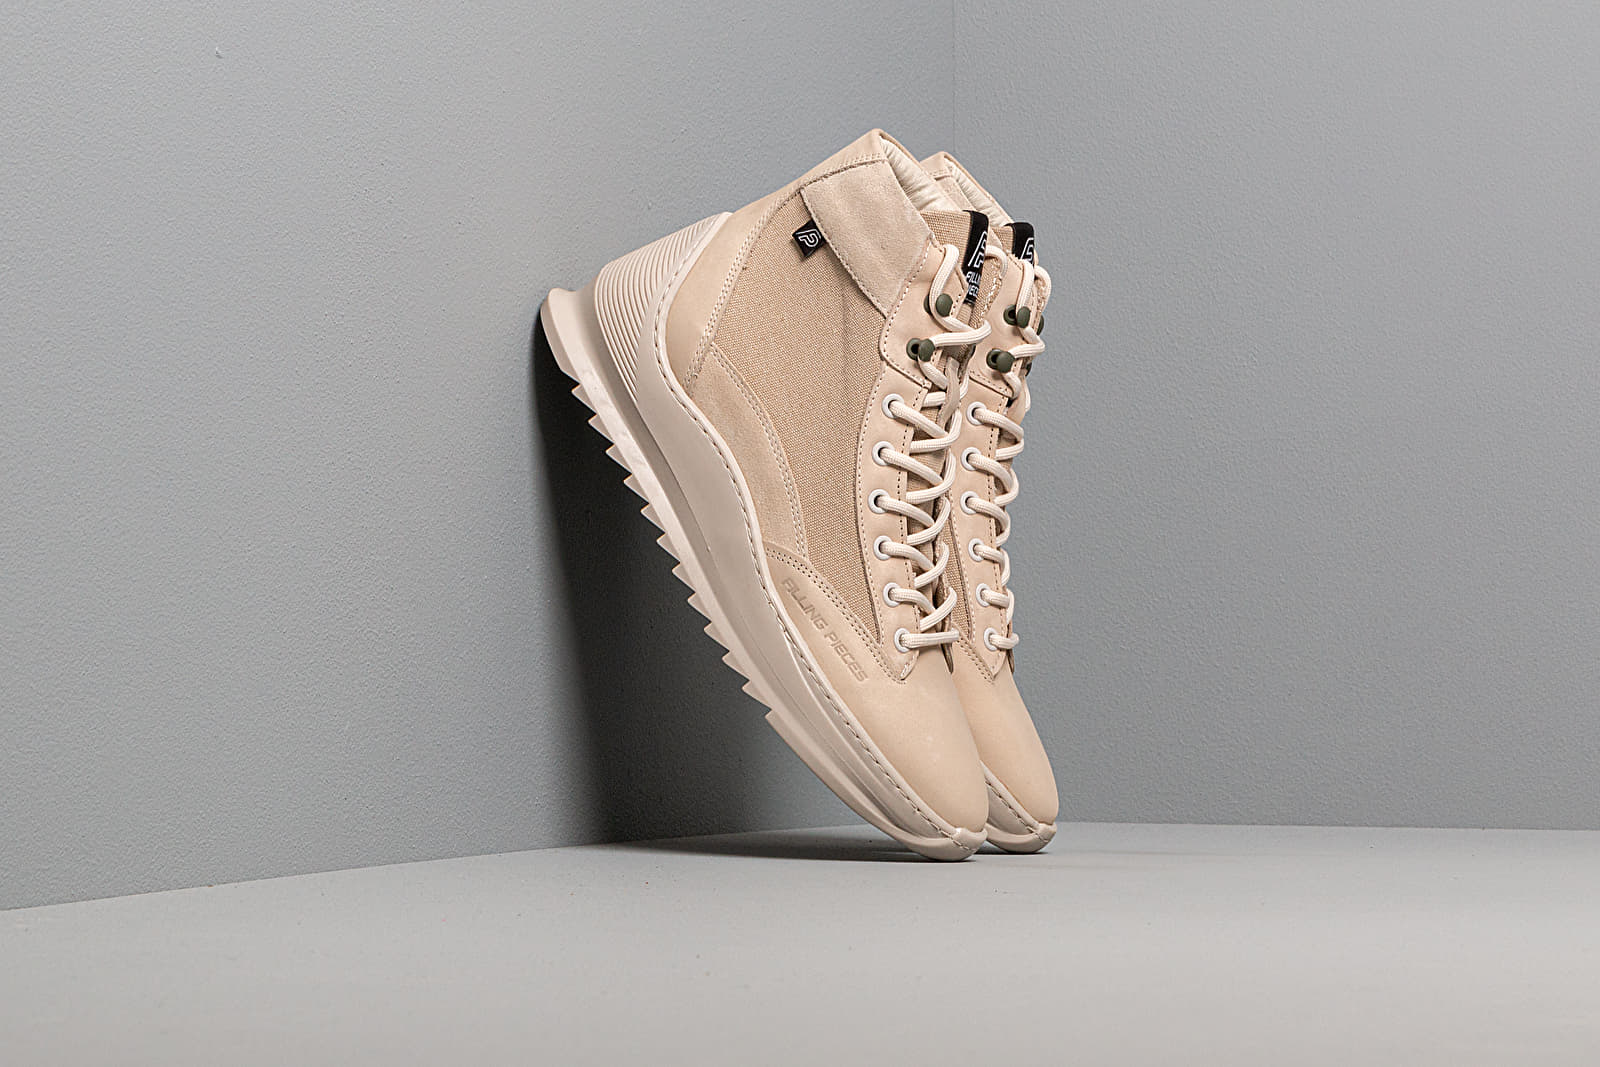 Filling Pieces Mid Apline Heel Cap Aten